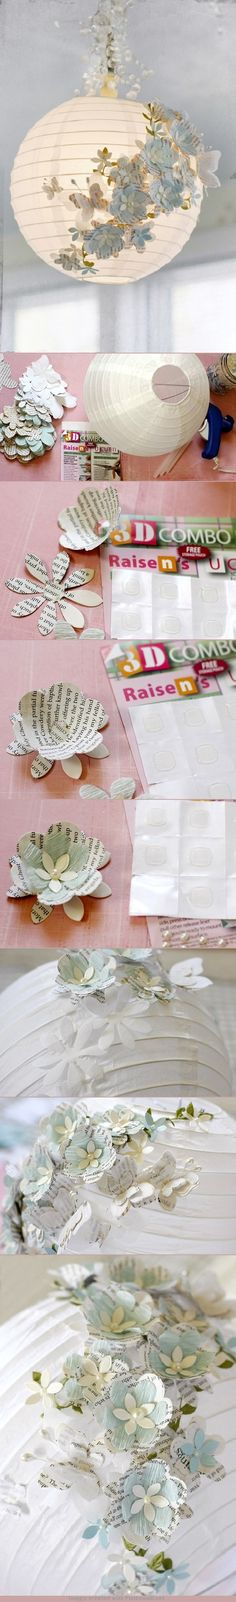 paper flowers decorate a round paper lantern